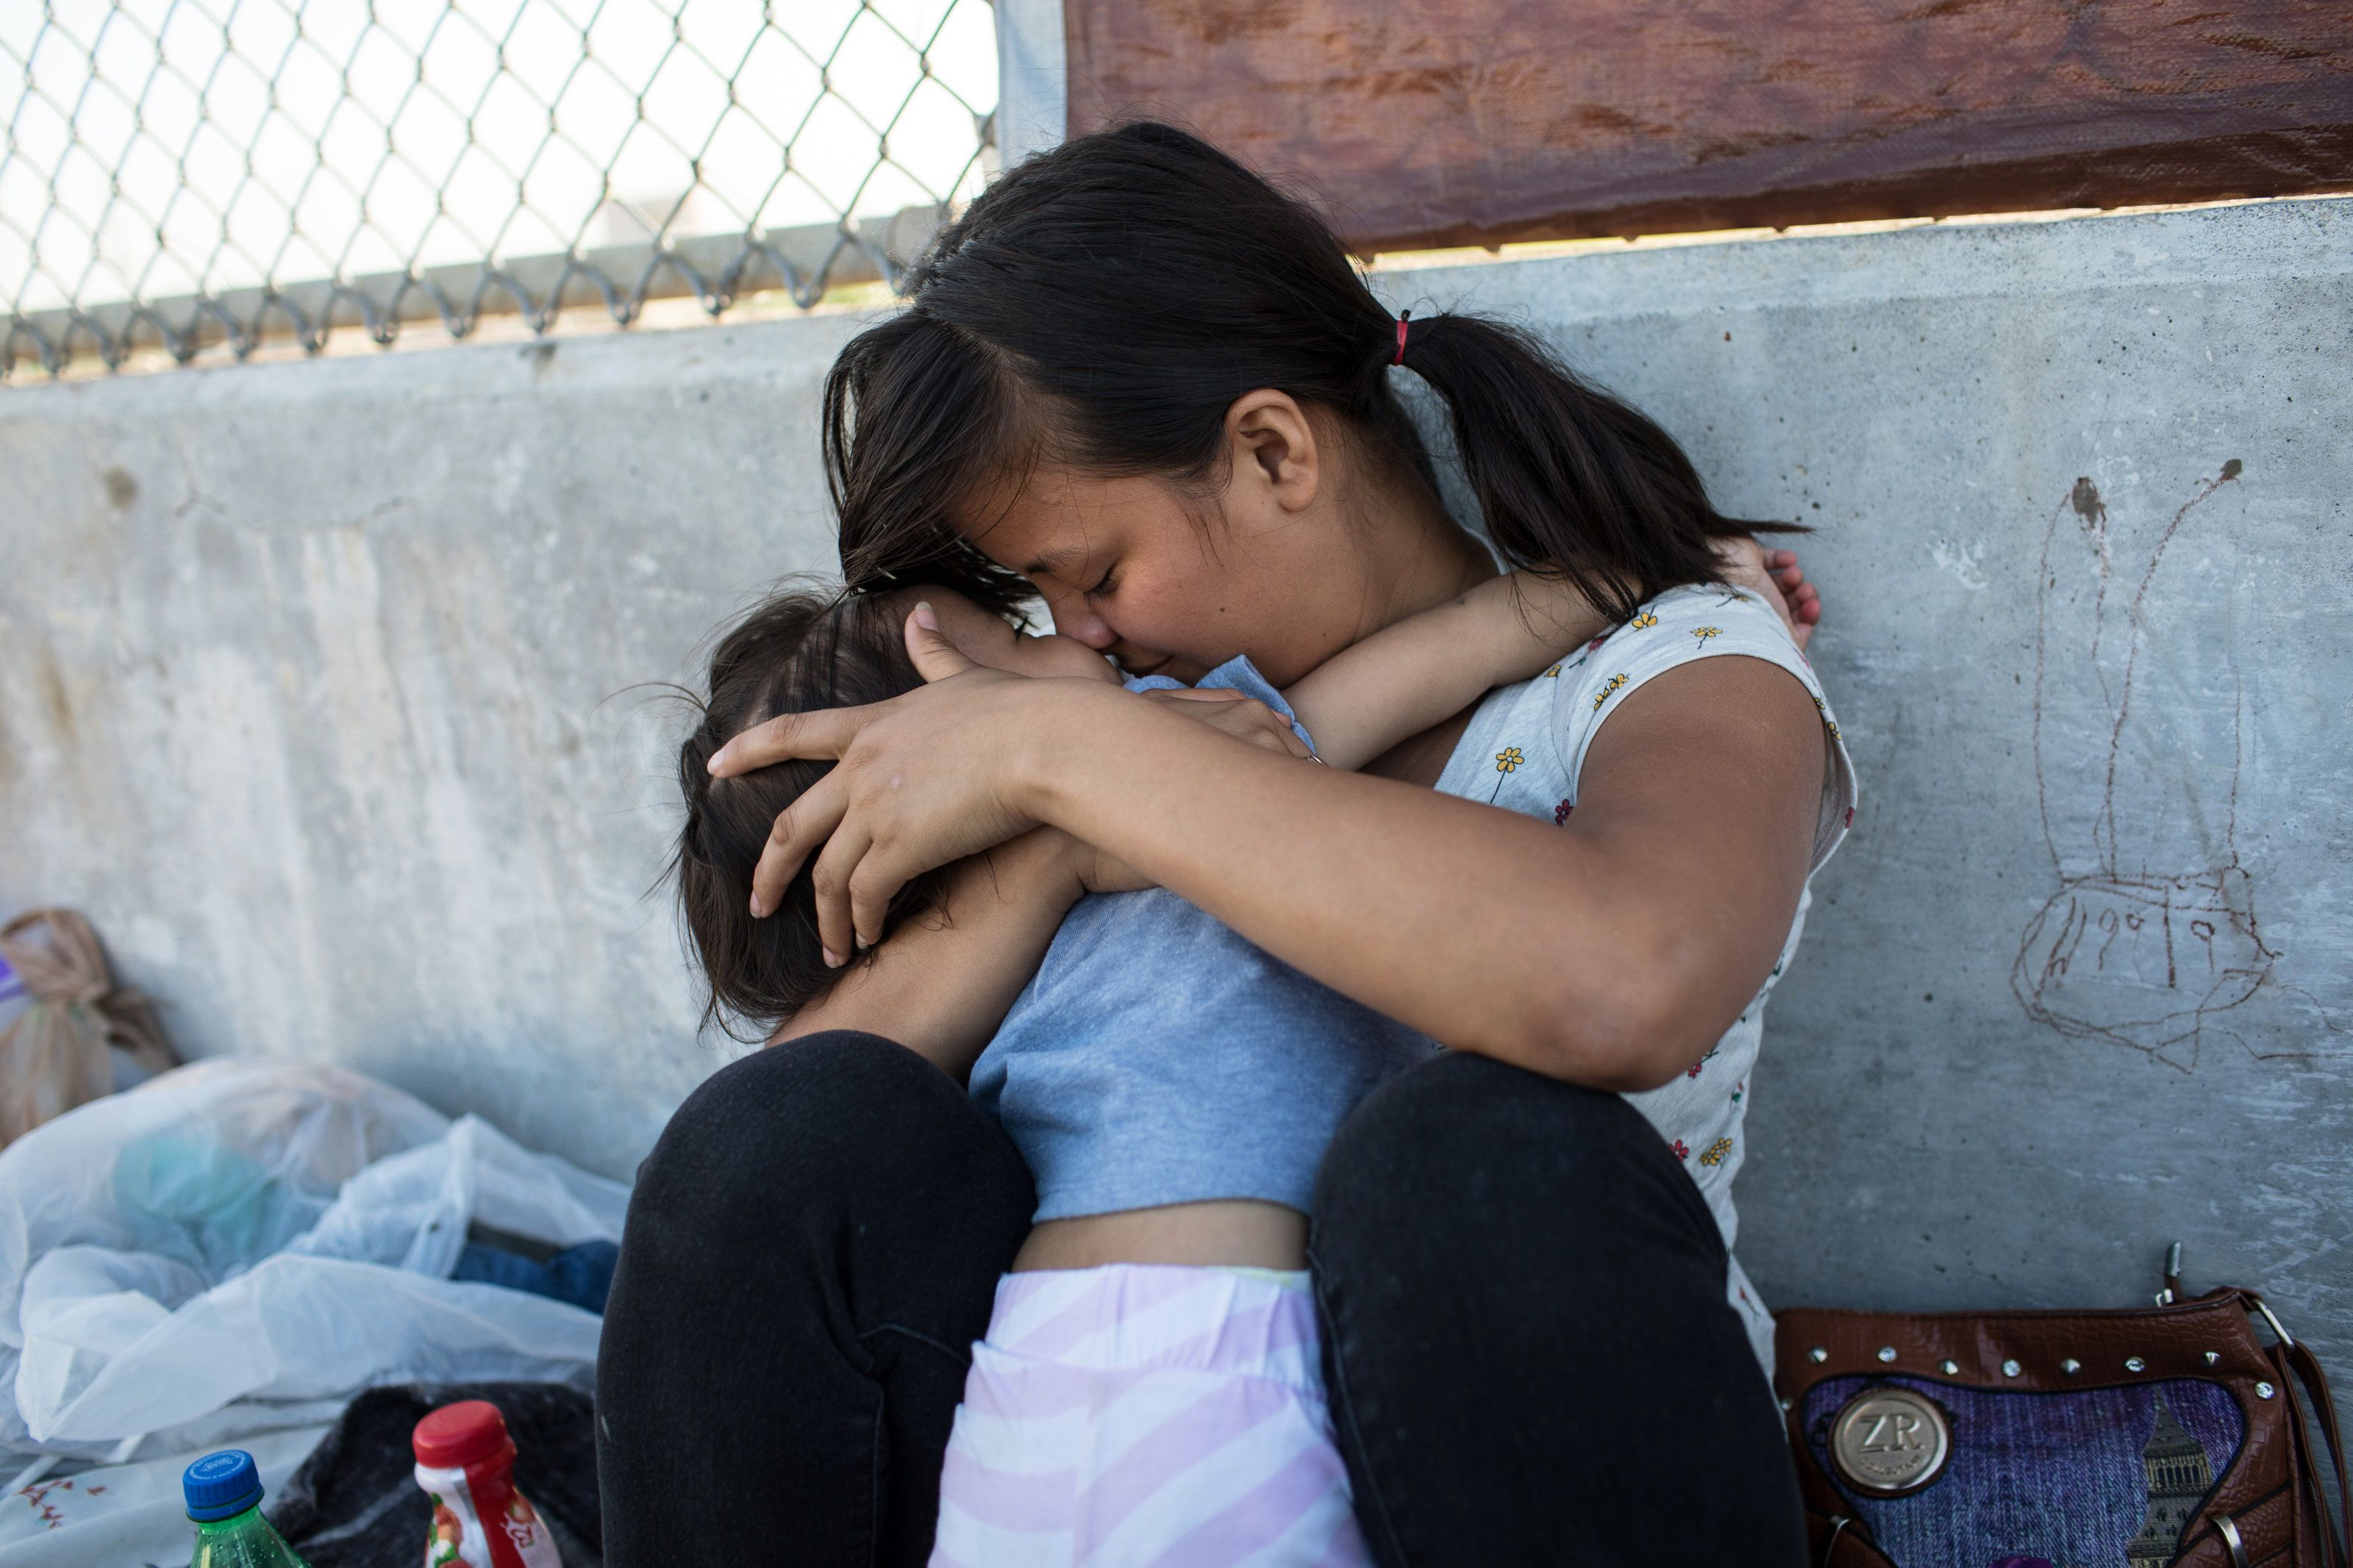 MATAMOROS, MX - JUNE 28: A Honduran woman embraces her 2-year-old daughter as they wait on the Mexican side of the Brownsville & Matamoros International Bridge after being denied entry into the U.S., on June 28, 2018 near Brownsville, Texas. Despite the Trump administration ending the zero-tolerance policy toward immigration, attention remains focused on the U.S.-Mexico border where migrants from Central America continue to arrive on a daily basis. (Photo by Tamir Kalifa/Getty Images)